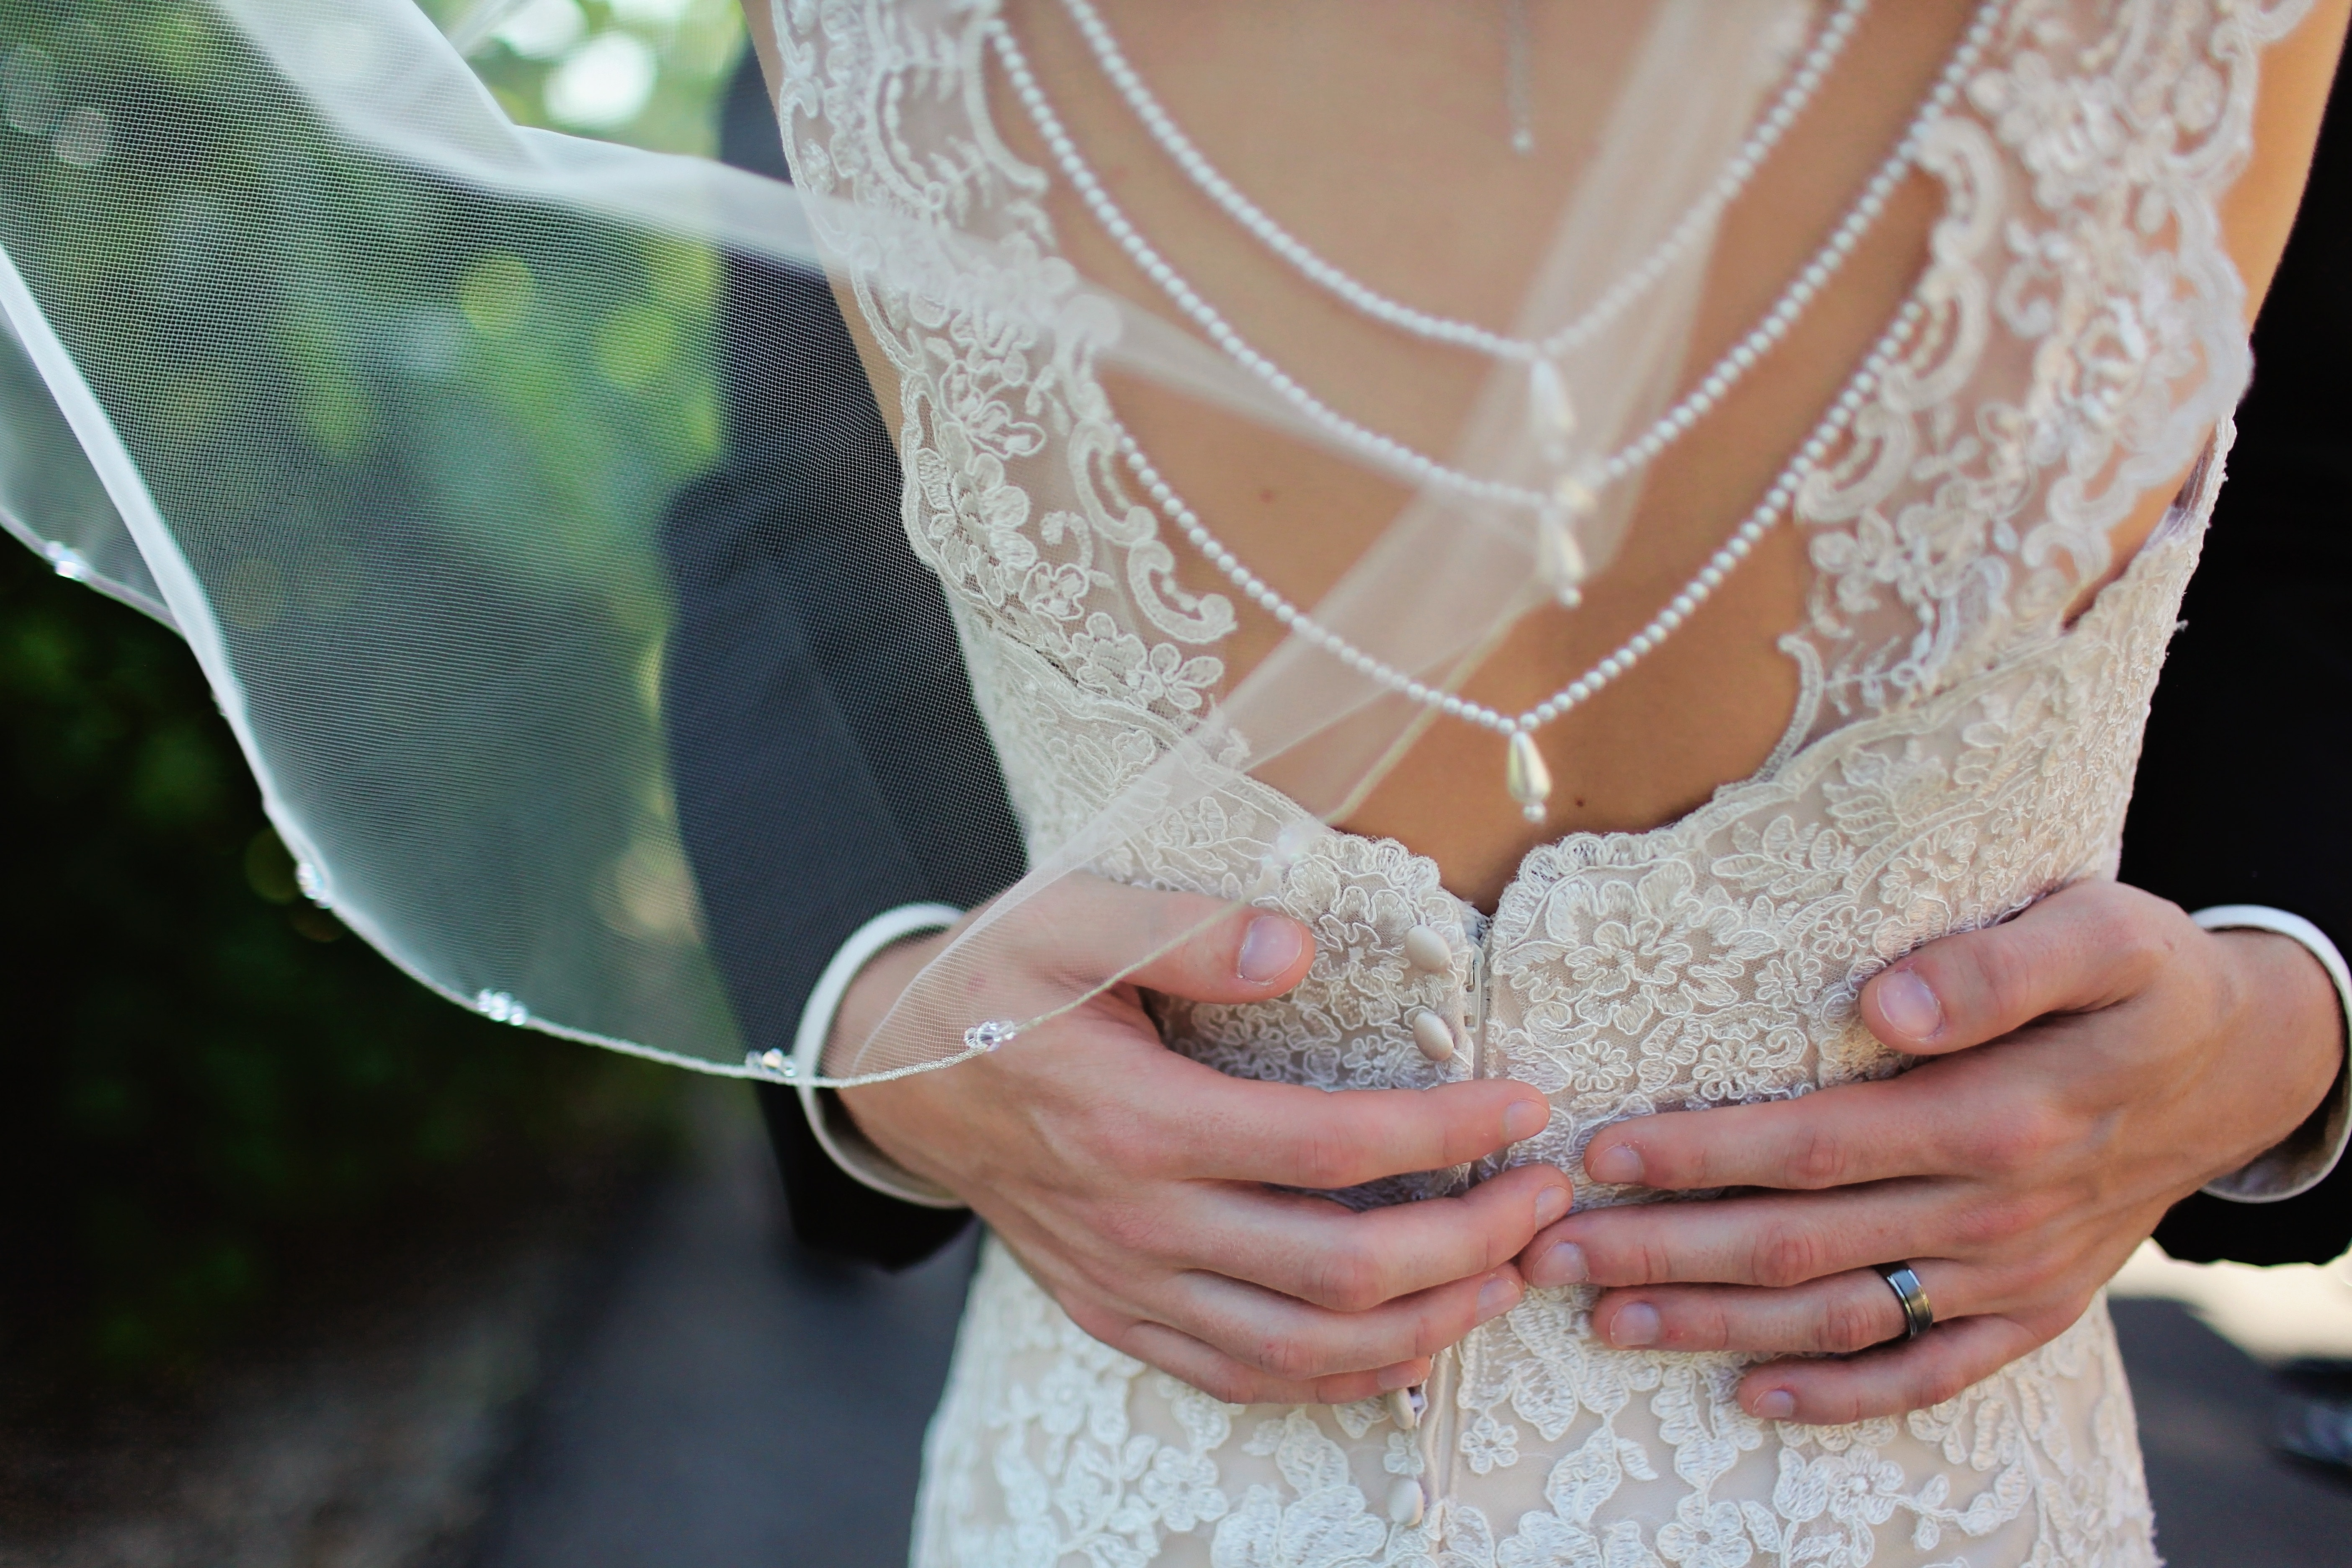 Woman wearing beige bridal gown during day time photo